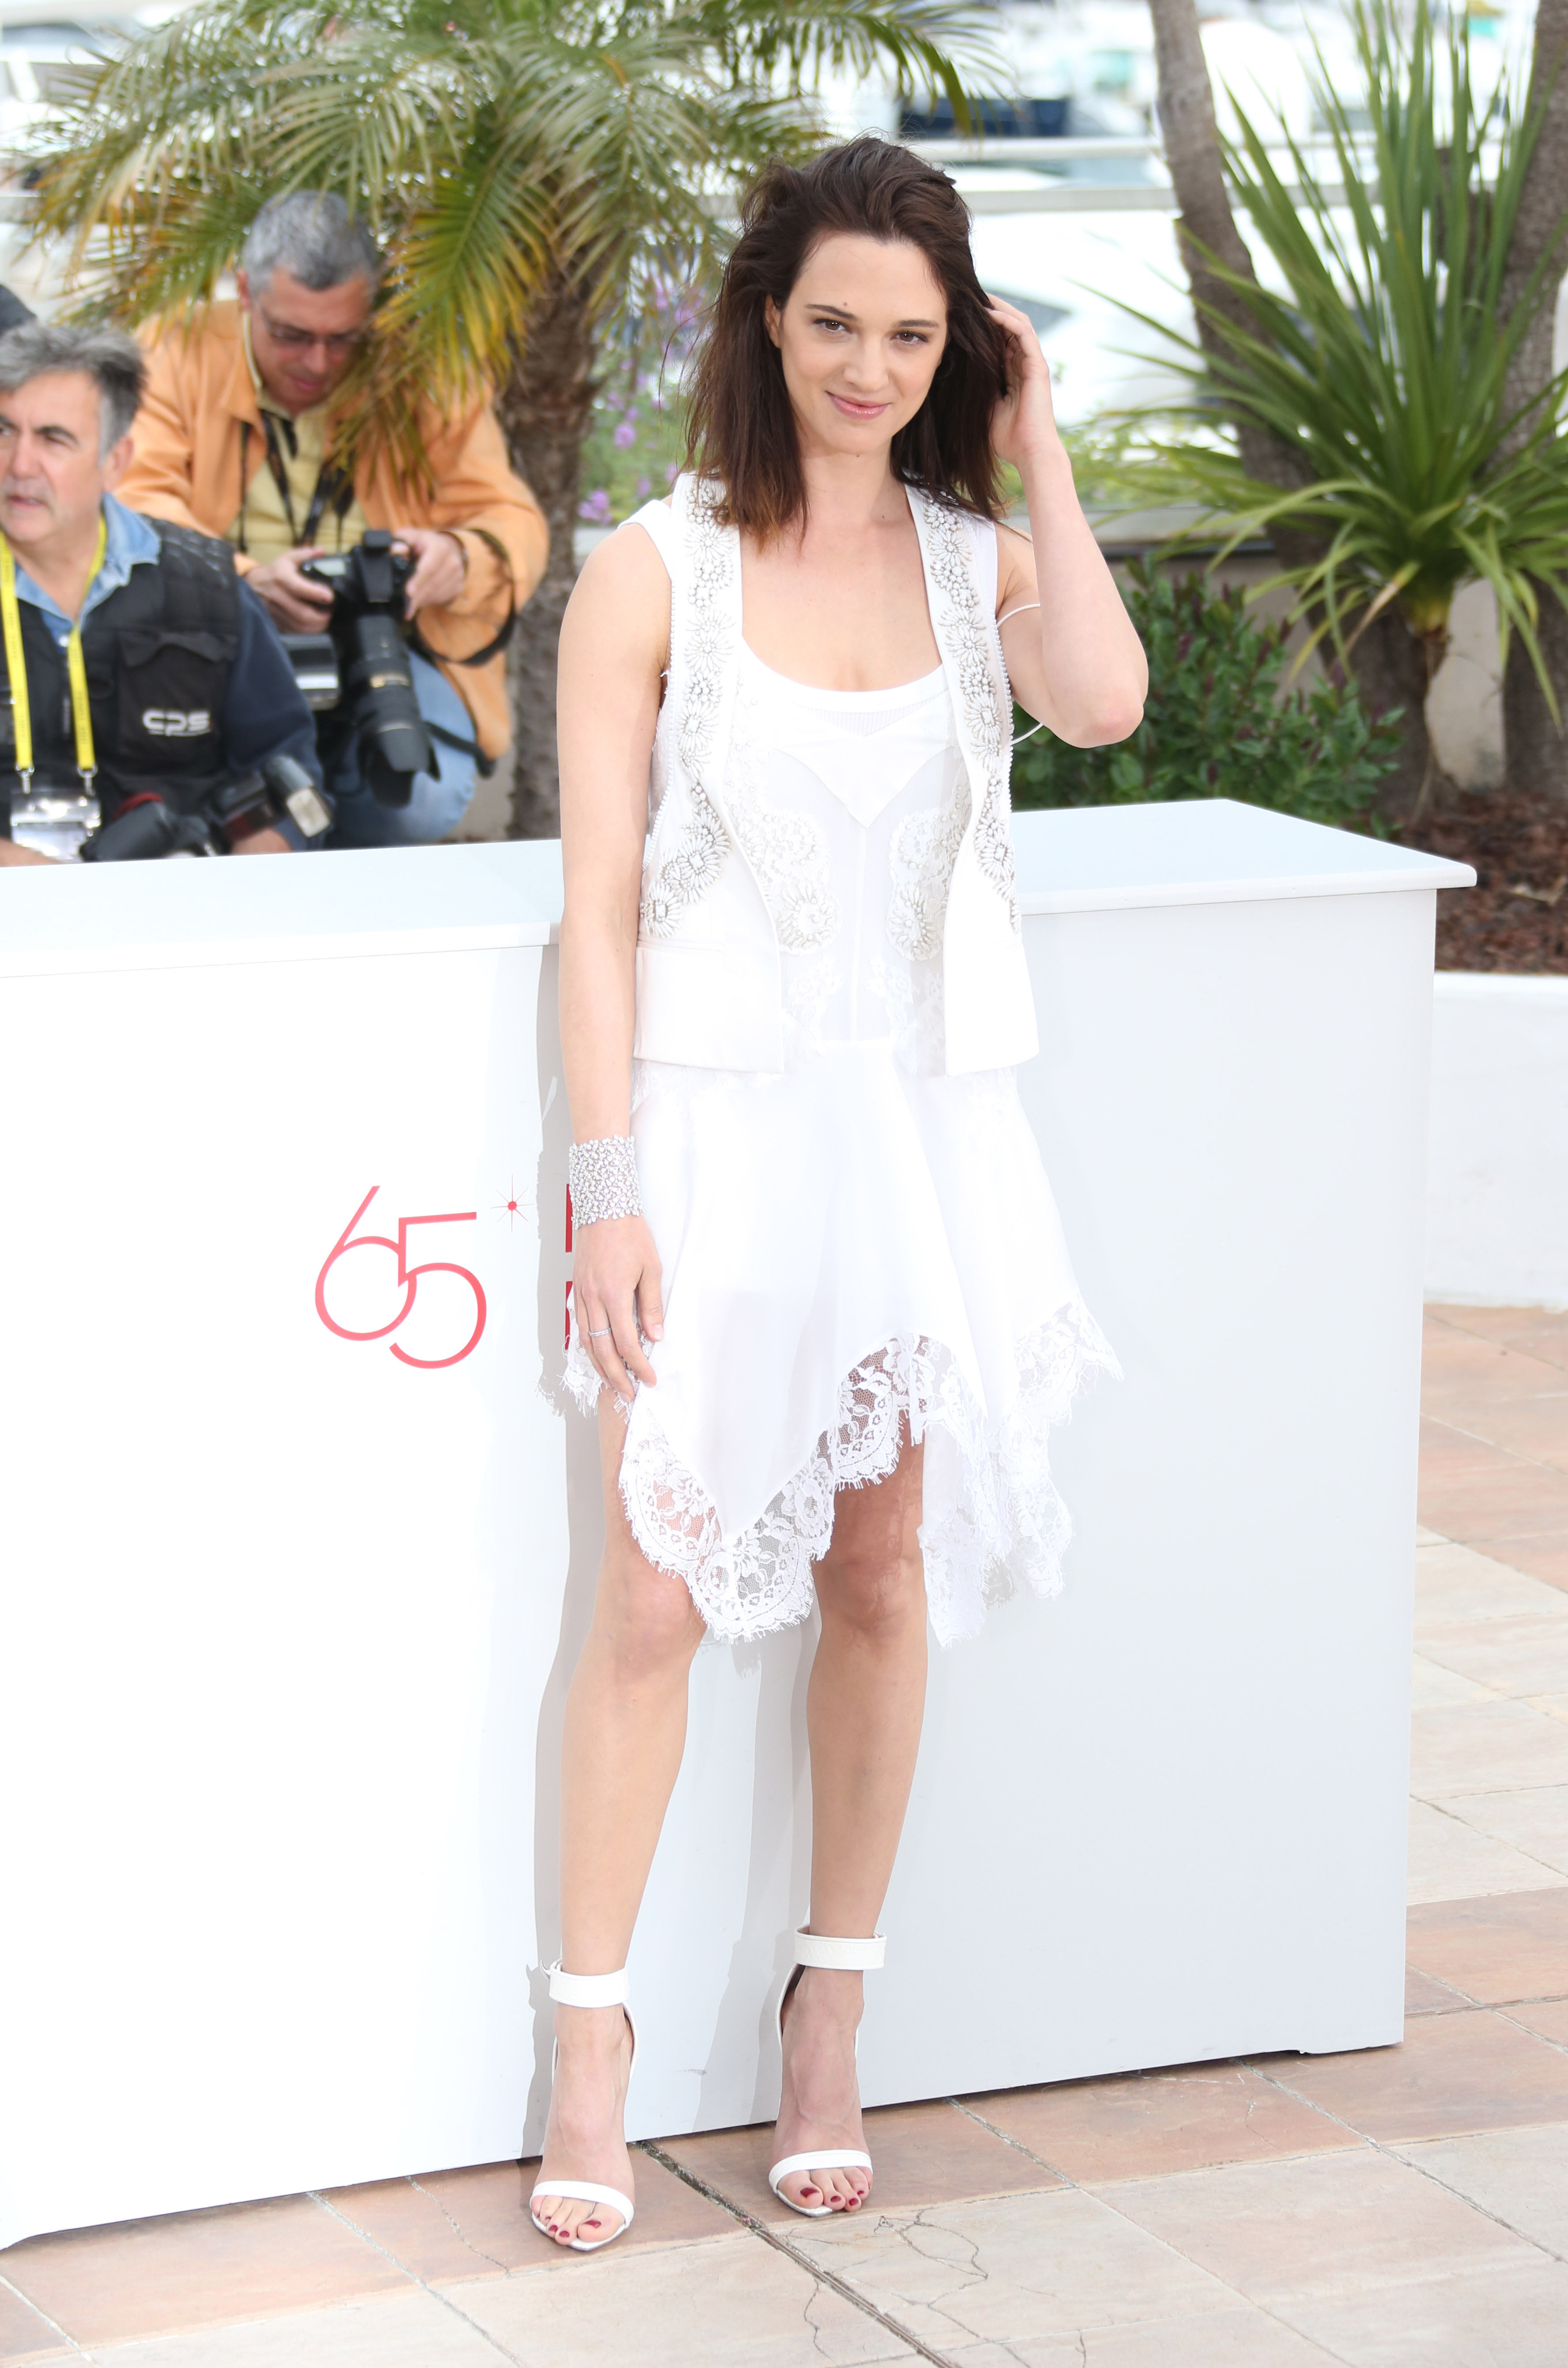 Asia Argento attends{ } 'Dracula 3D' photocall during the 65th Annual Cannes Film Festival. When: 19 May 2012 Credit: WENN